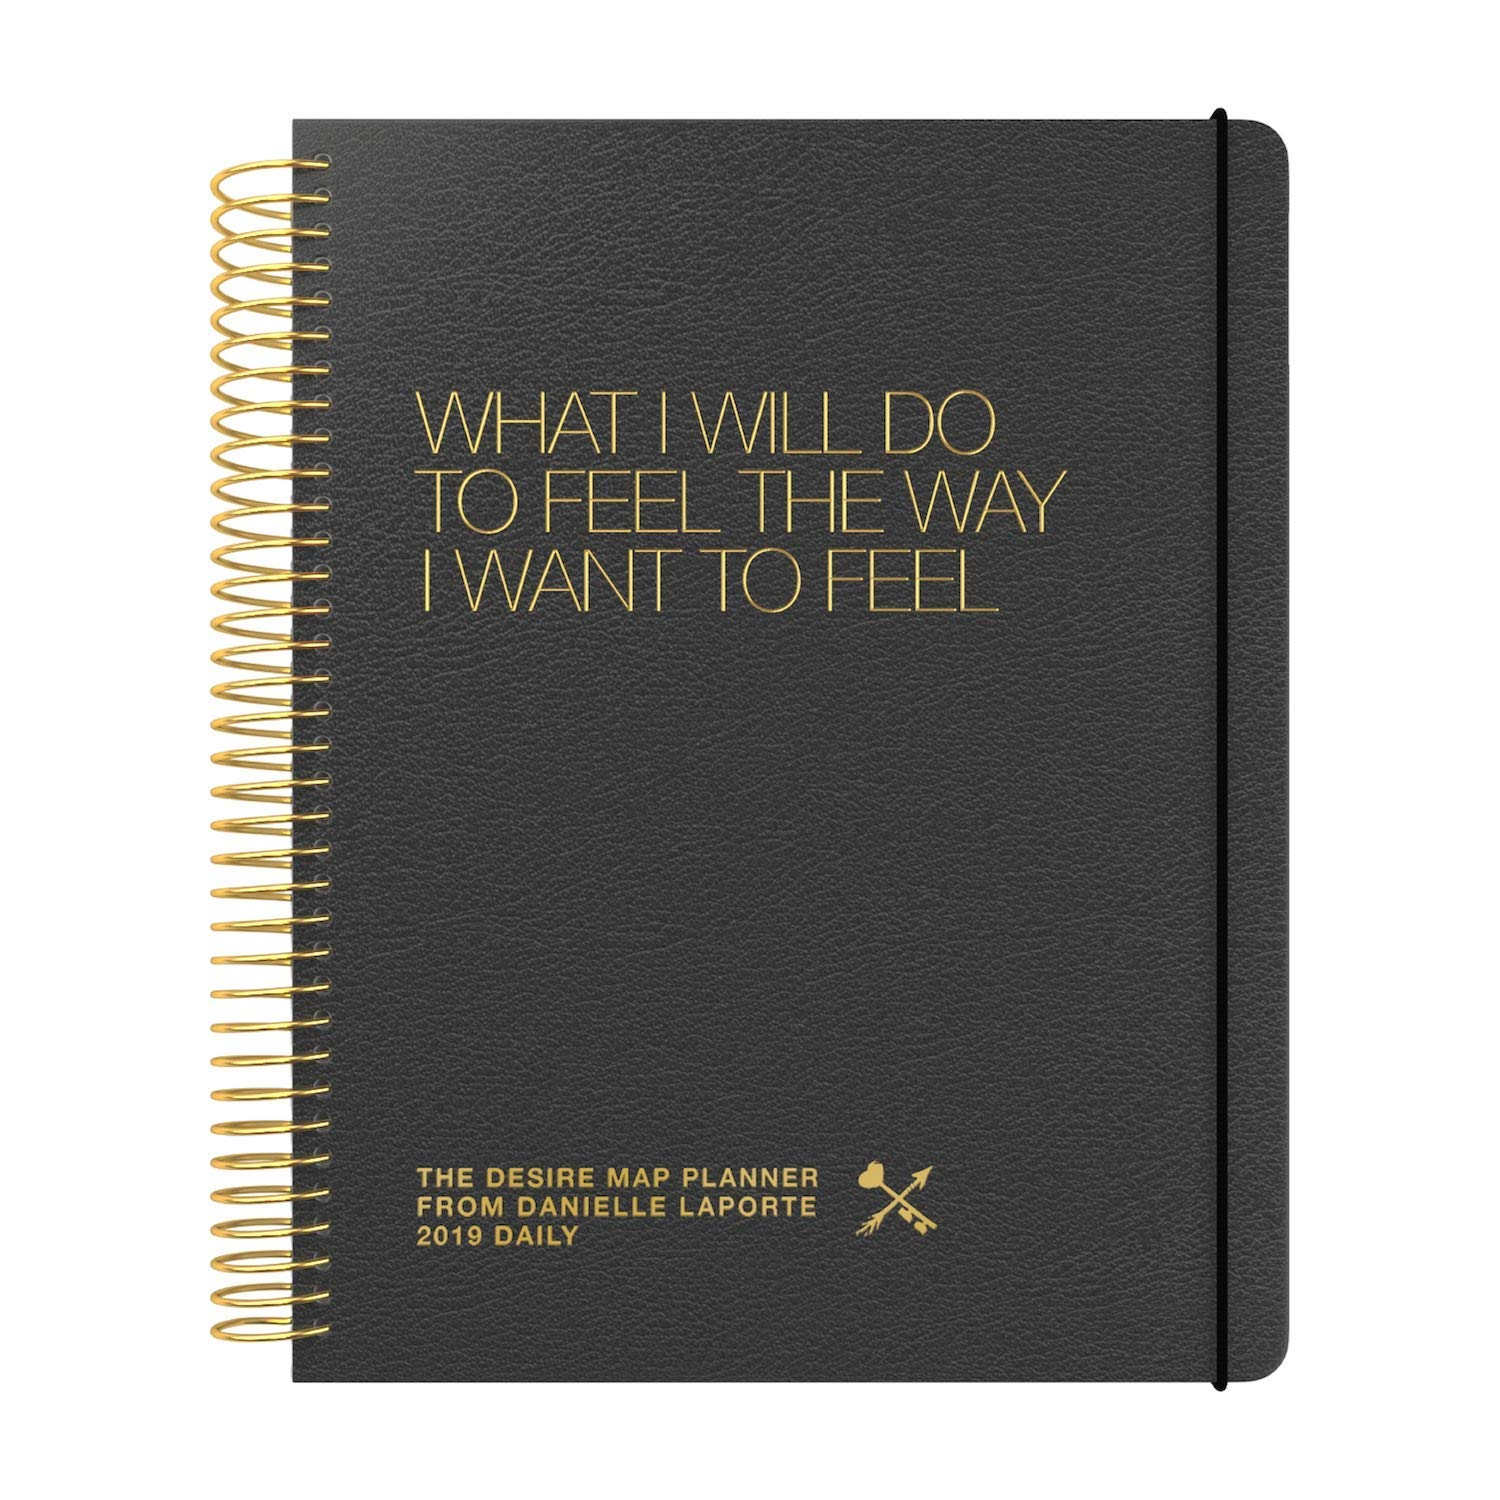 Amazon.com : The Desire Map 2019 Daily Planner by Danielle ...